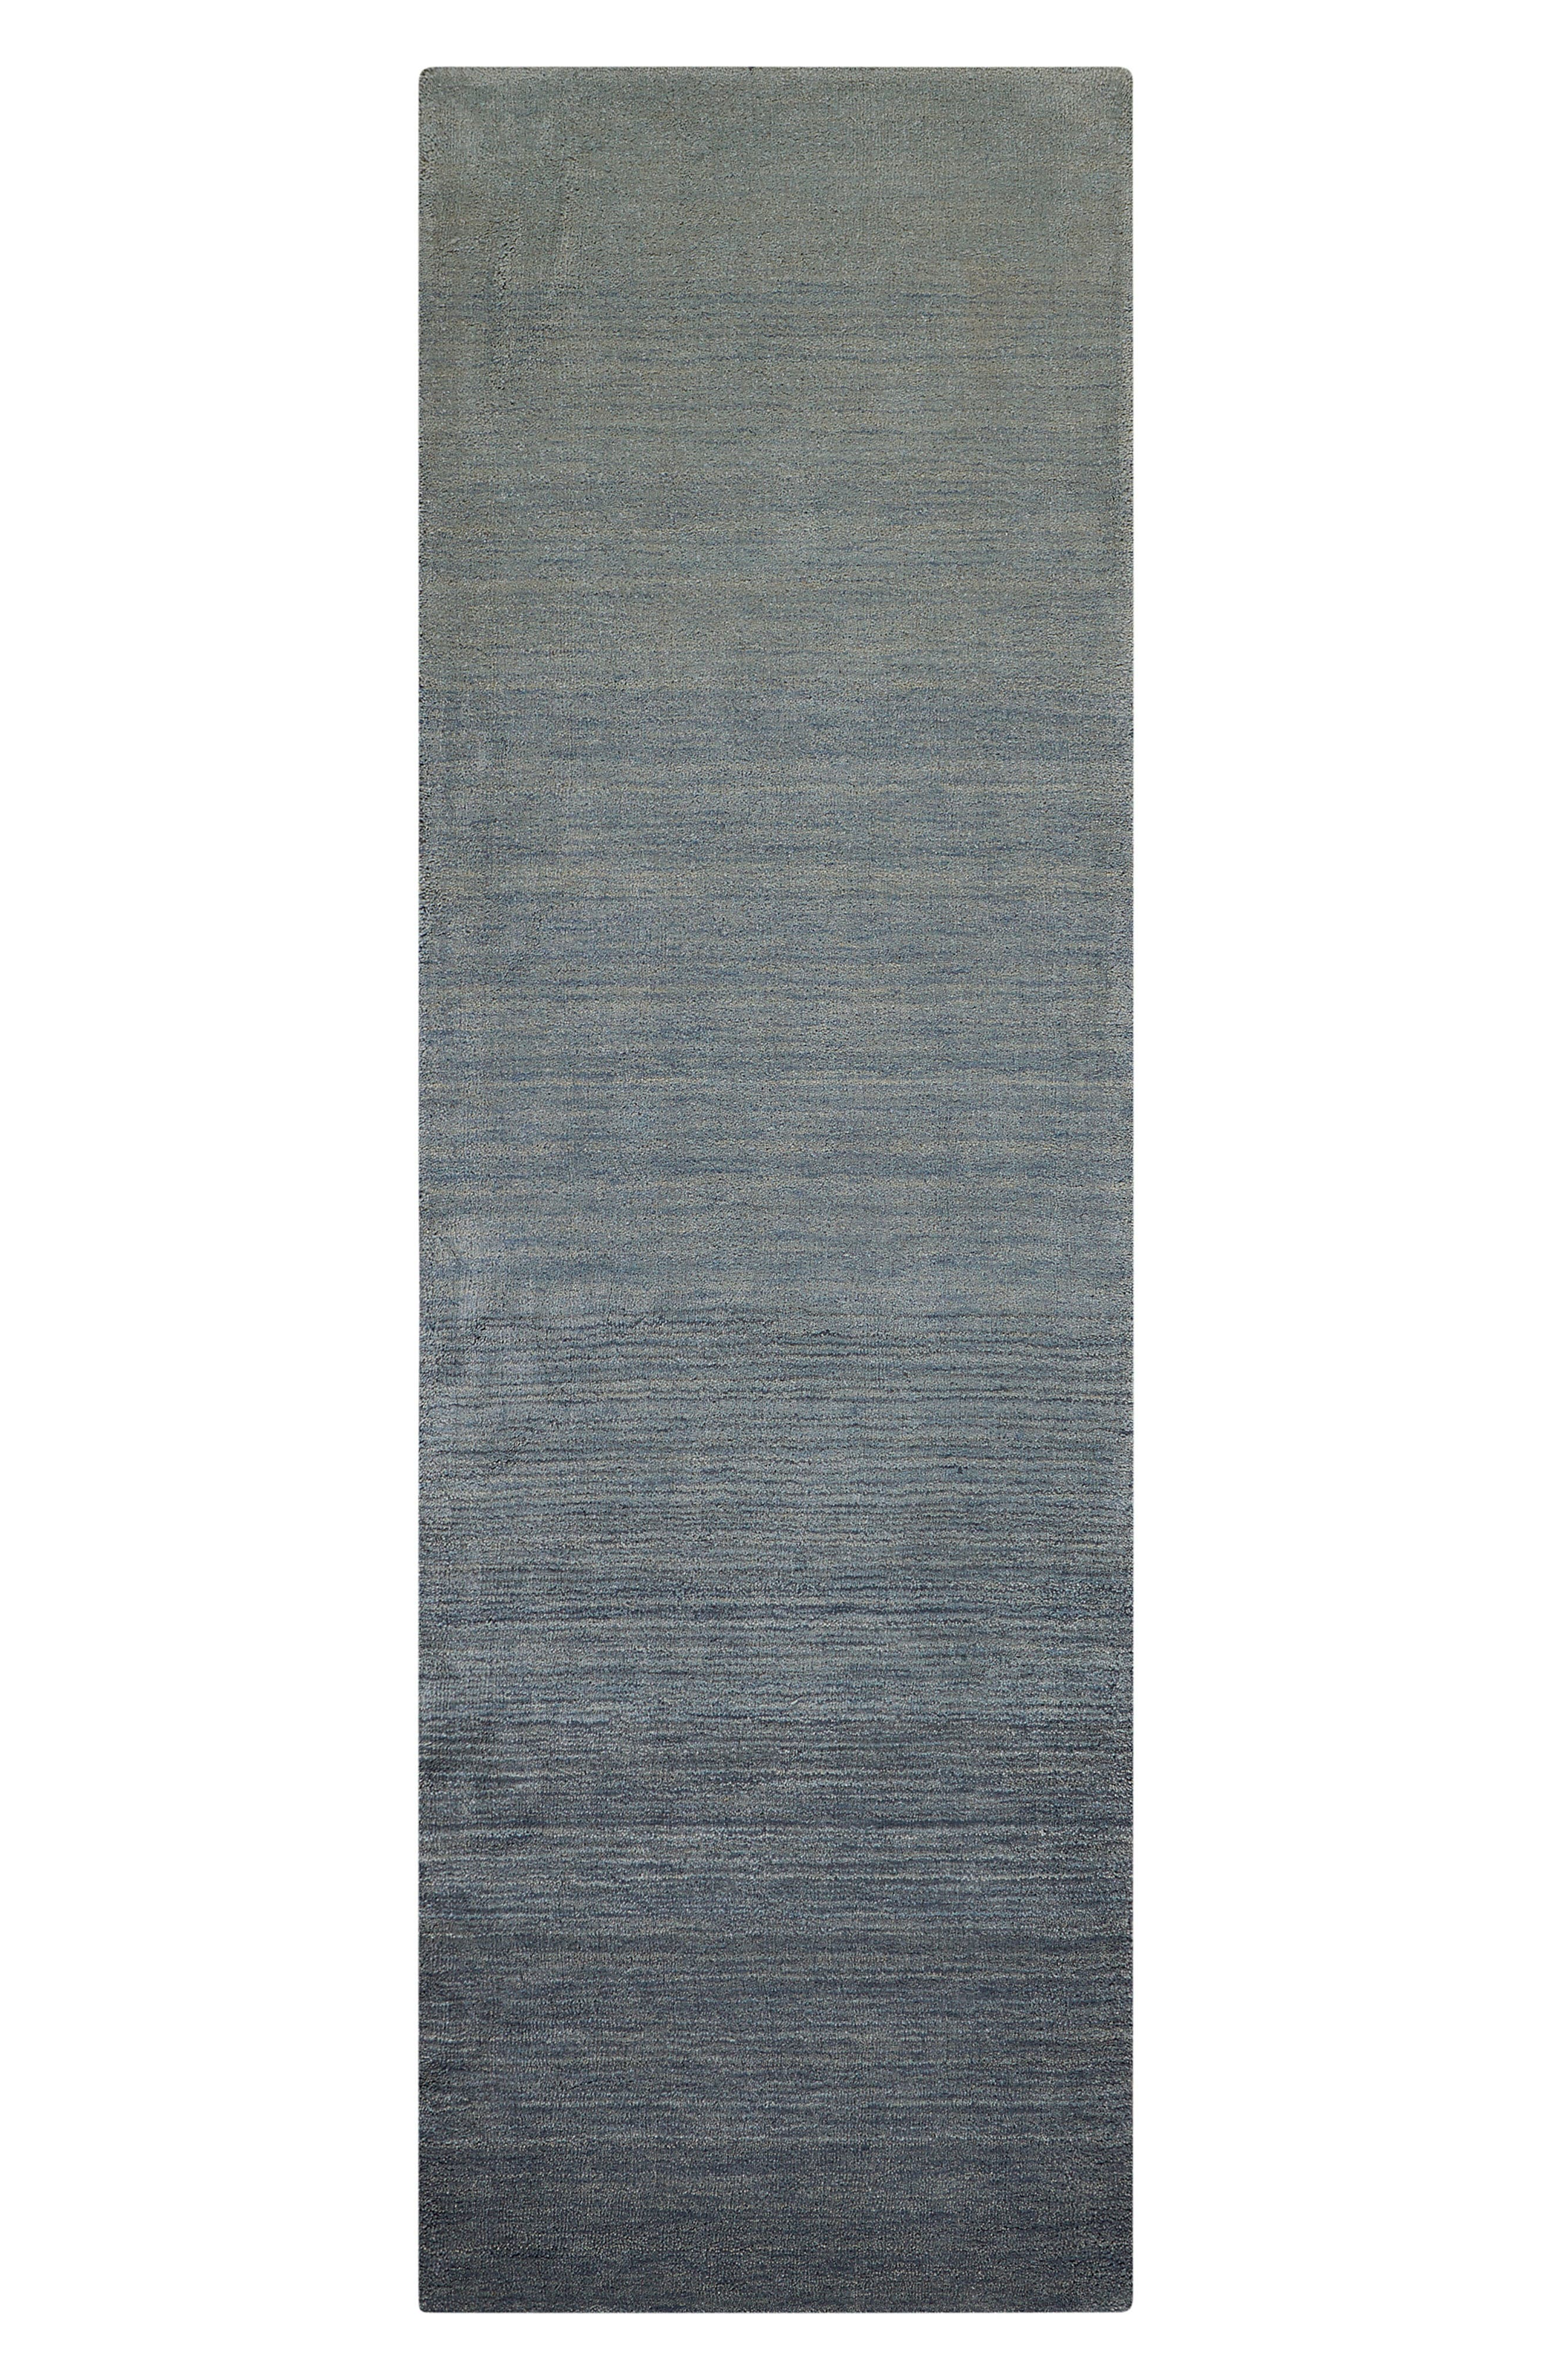 Haze Smoke Wool Area Rug,                             Alternate thumbnail 2, color,                             Brook